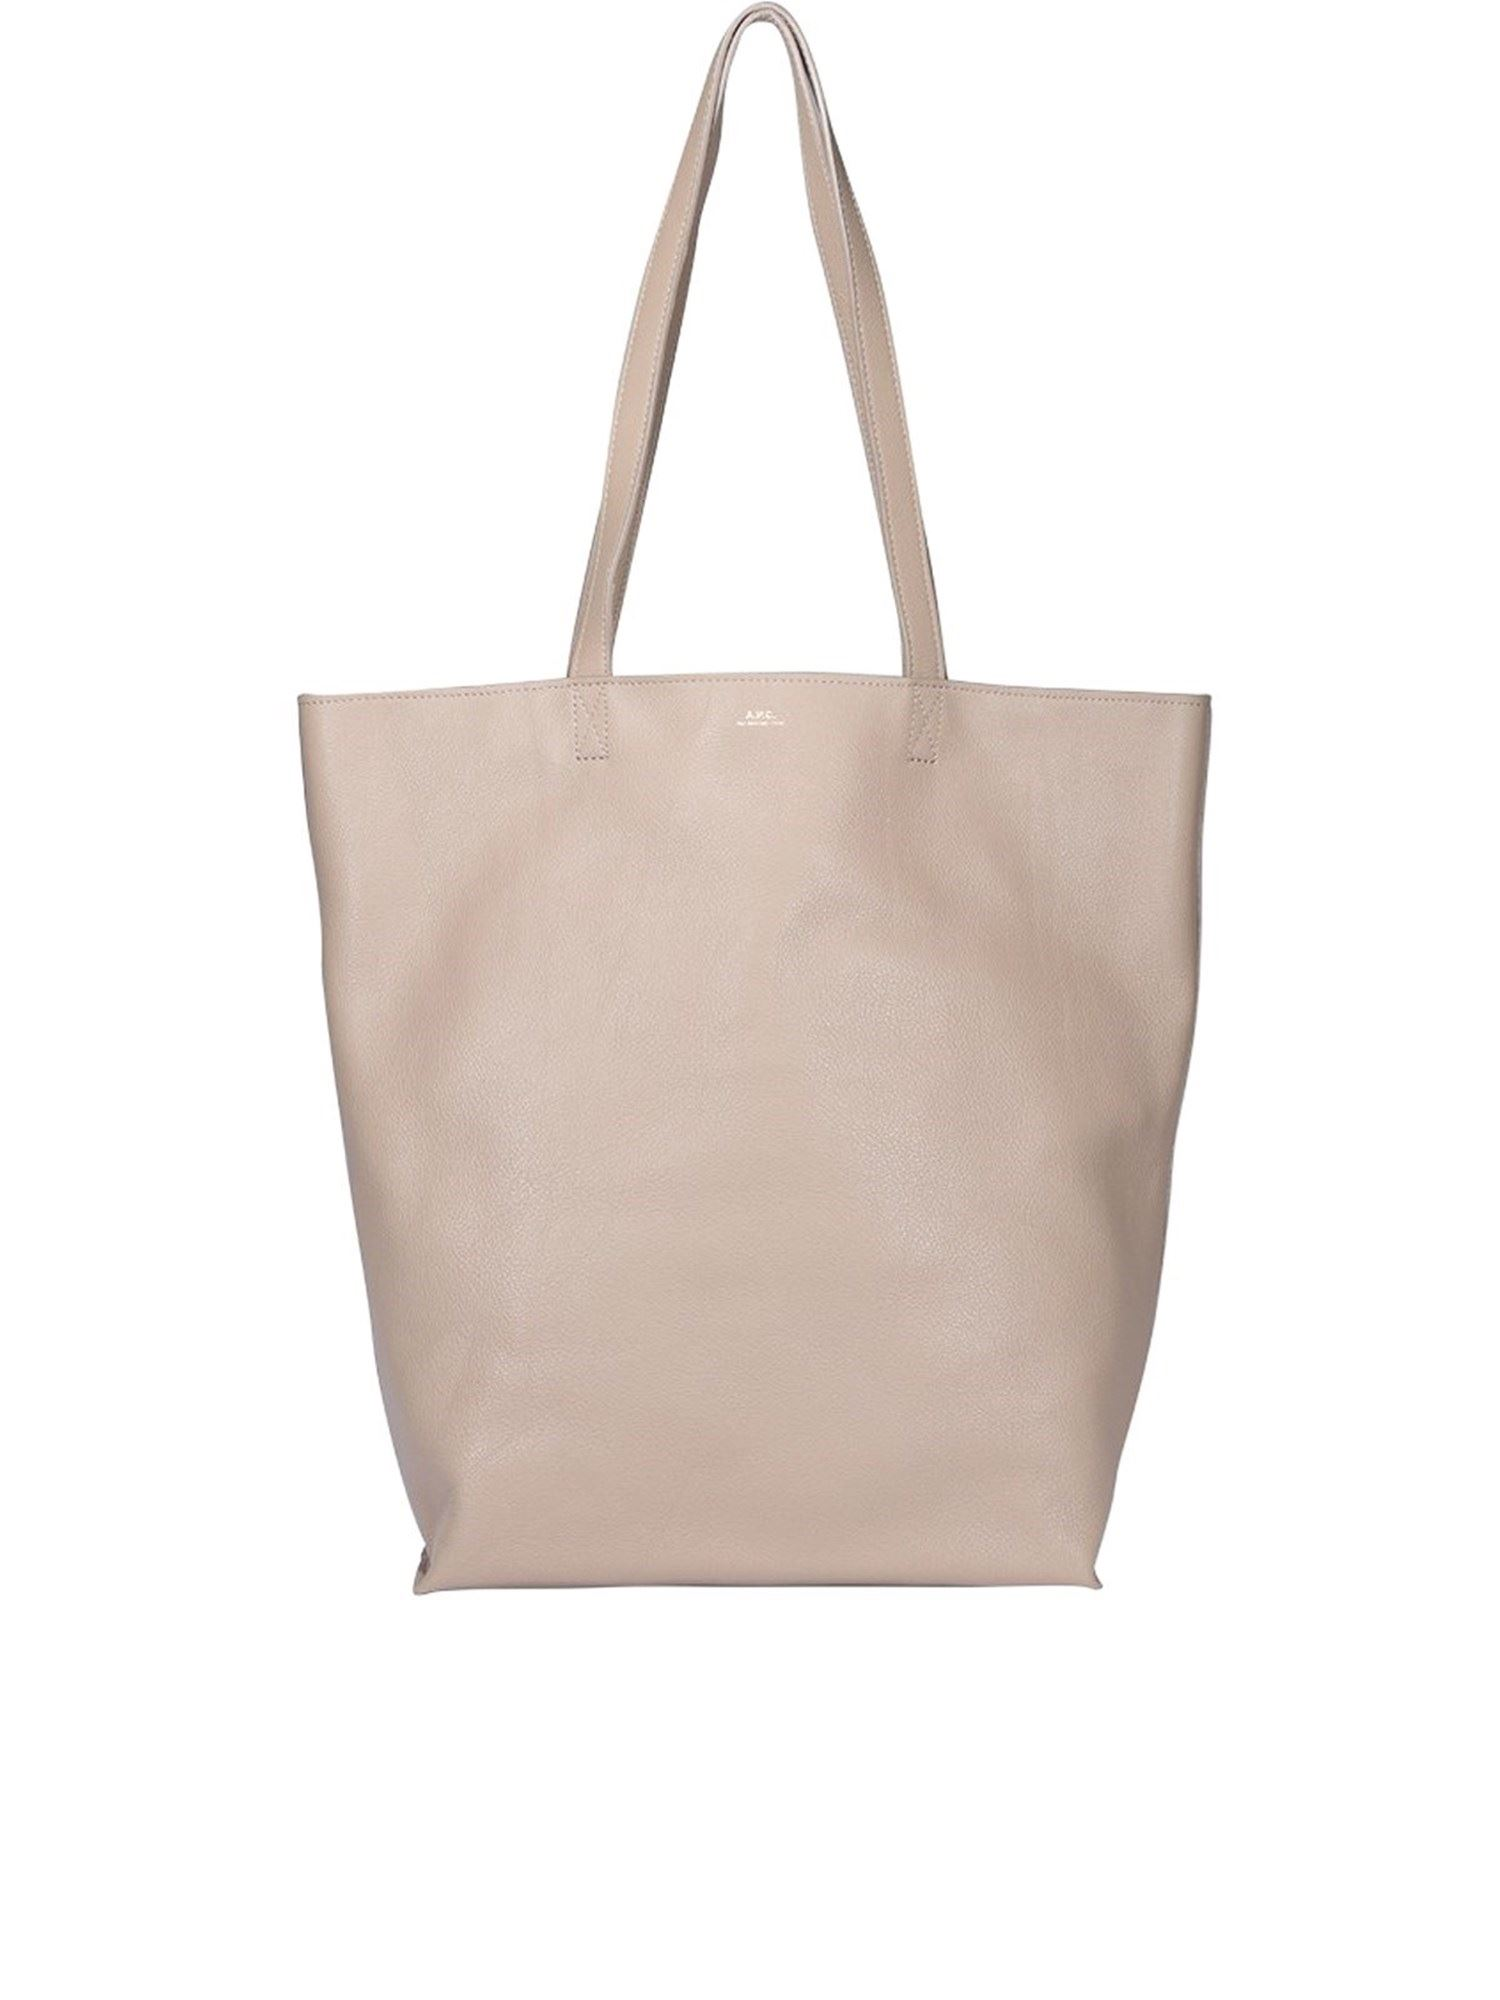 A.p.c. Leathers MAIKO TOTE IN BEIGE